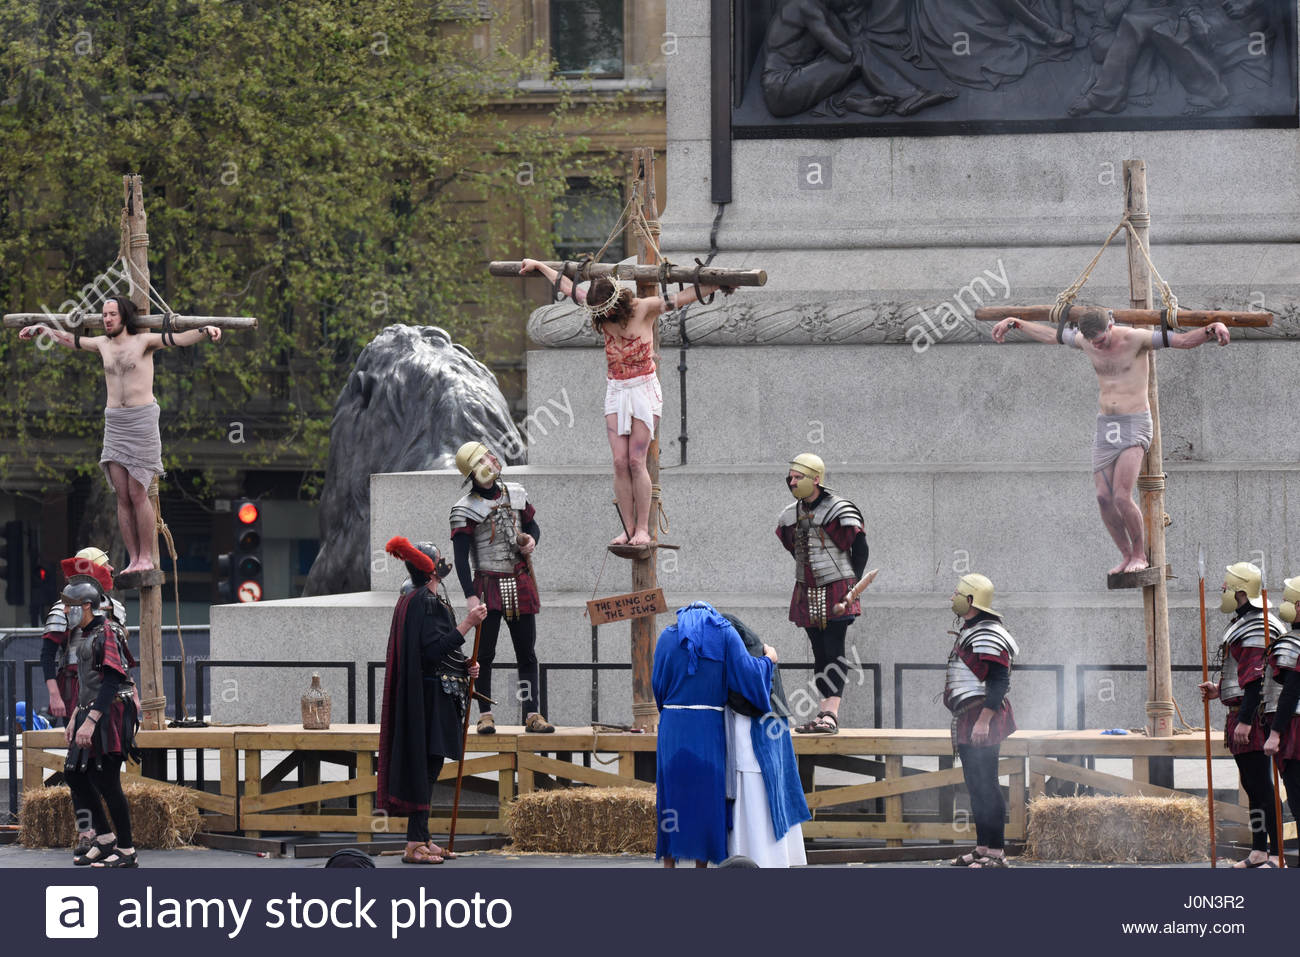 crucifixion-on-easters-good-friday-the-cast-of-wintershall-portrayed-J0N3R2.jpg